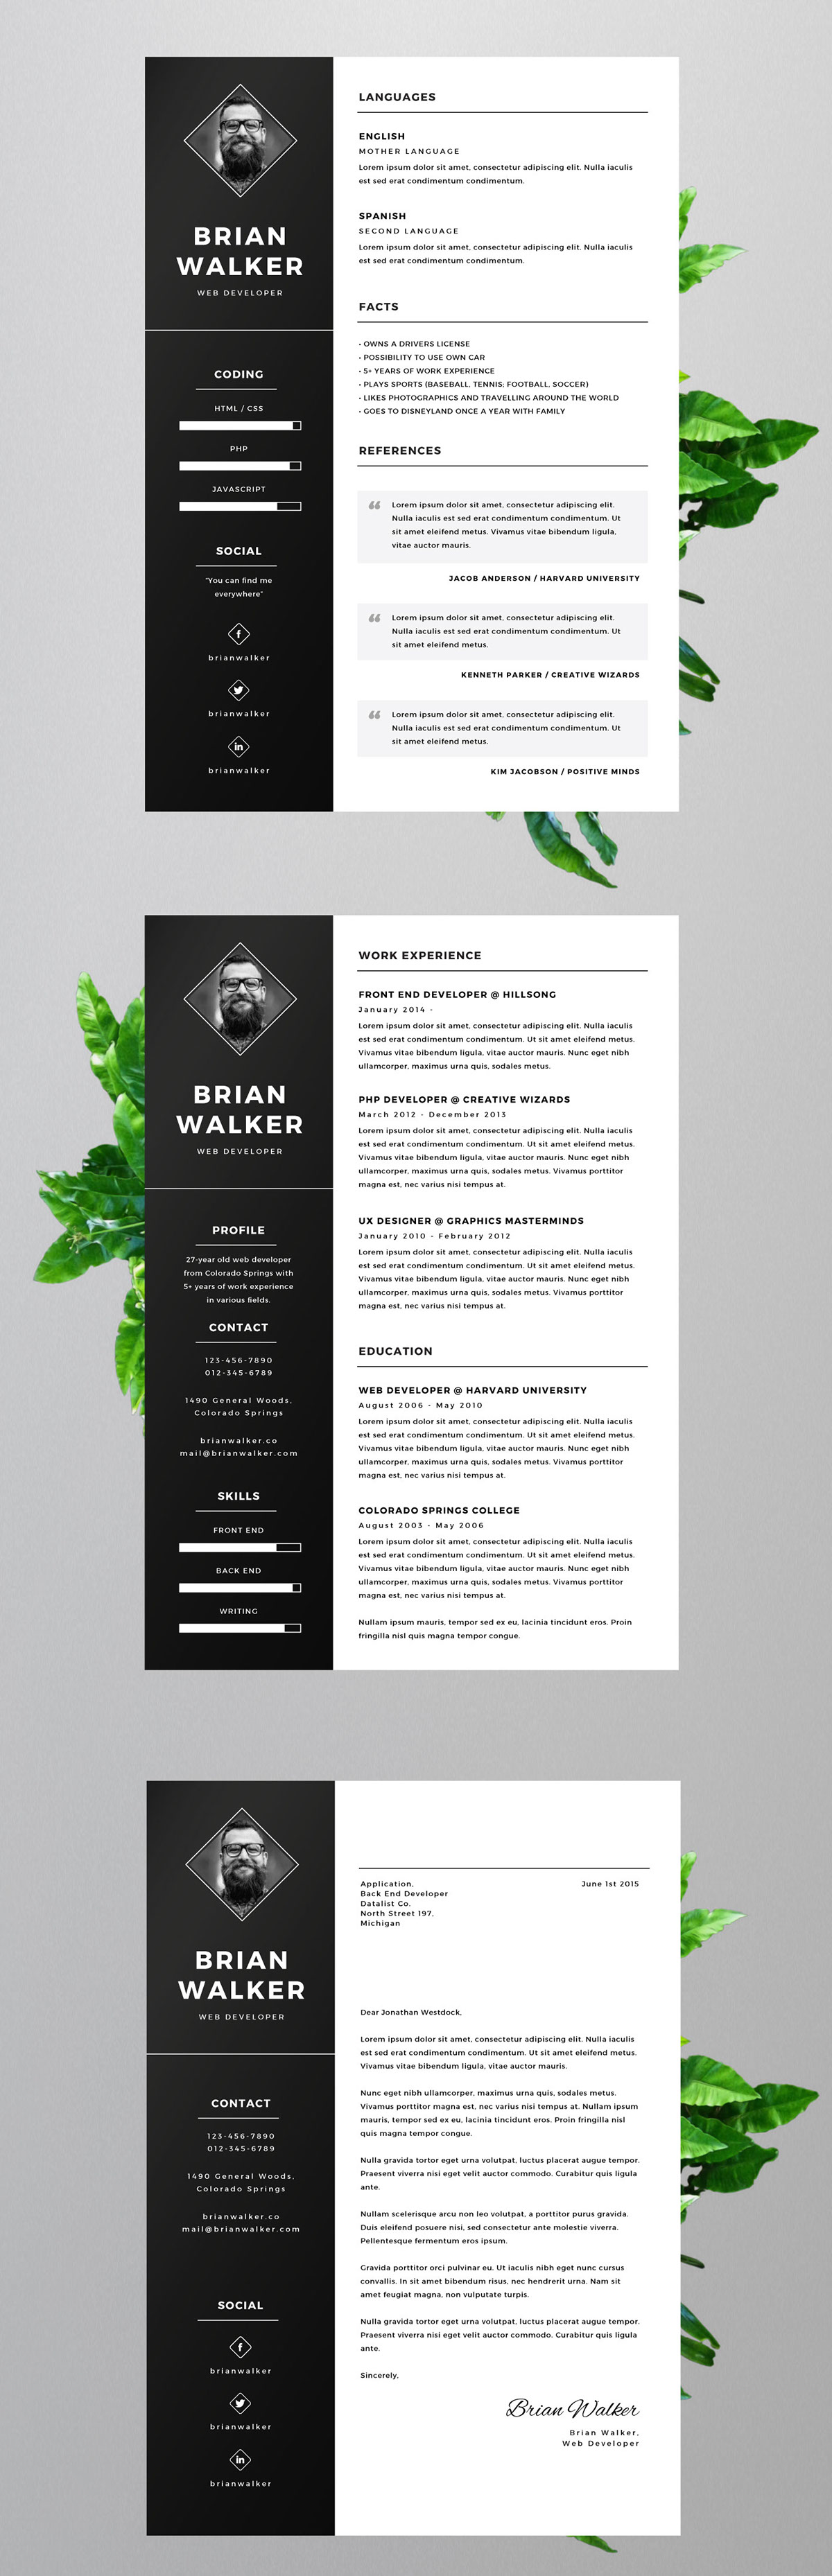 free resume template for word  photoshop  u0026 illustrator on behance